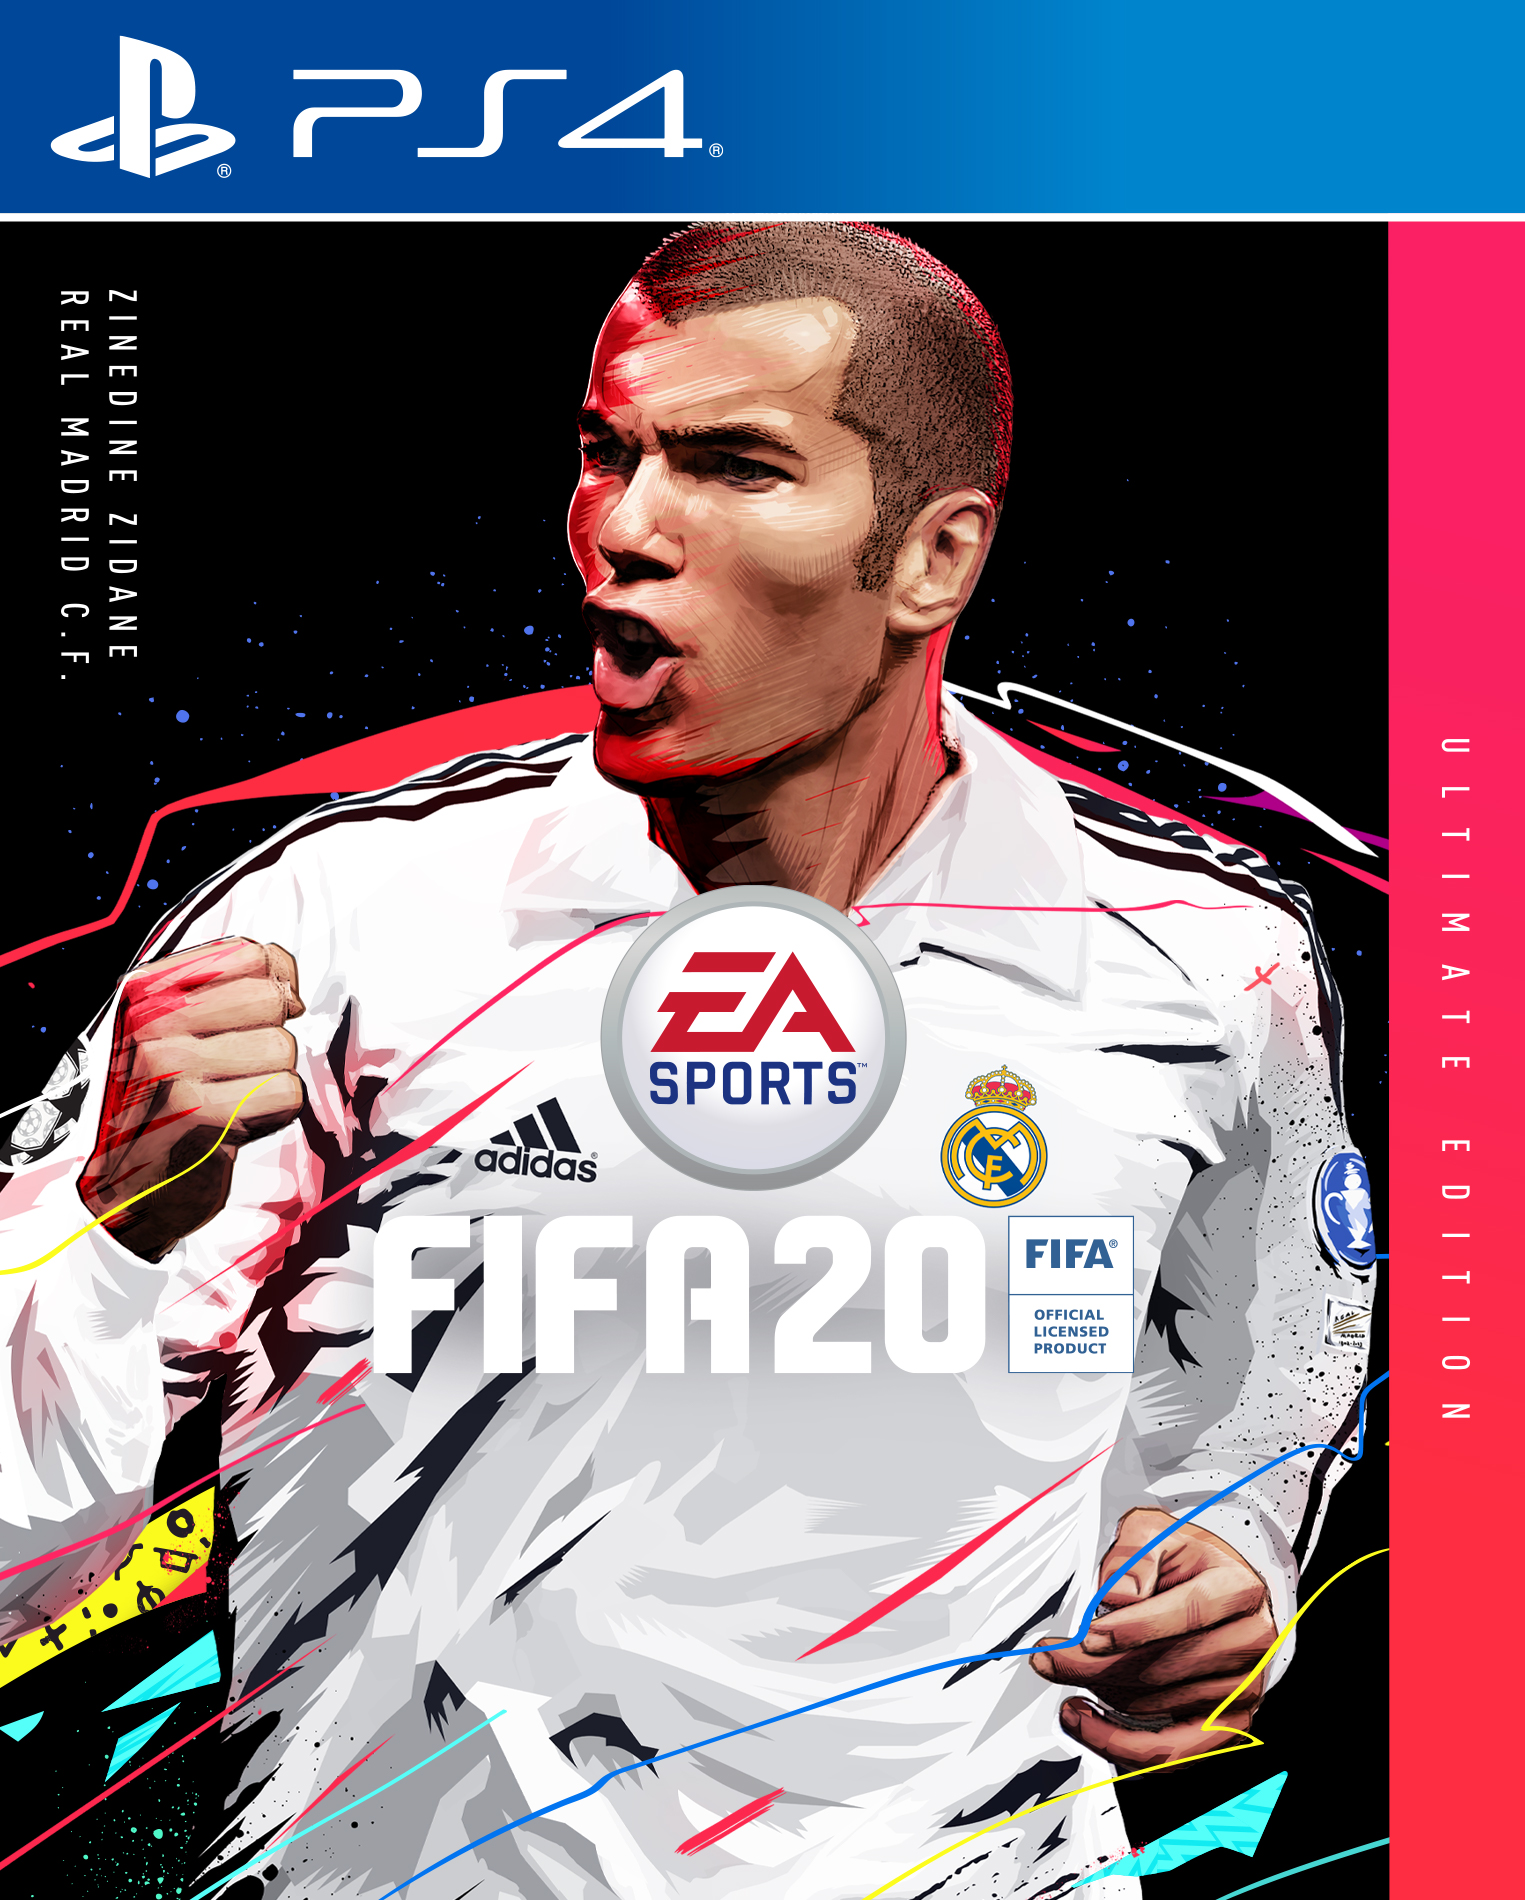 Zinedine Zidane FIFA Ultimate Edition